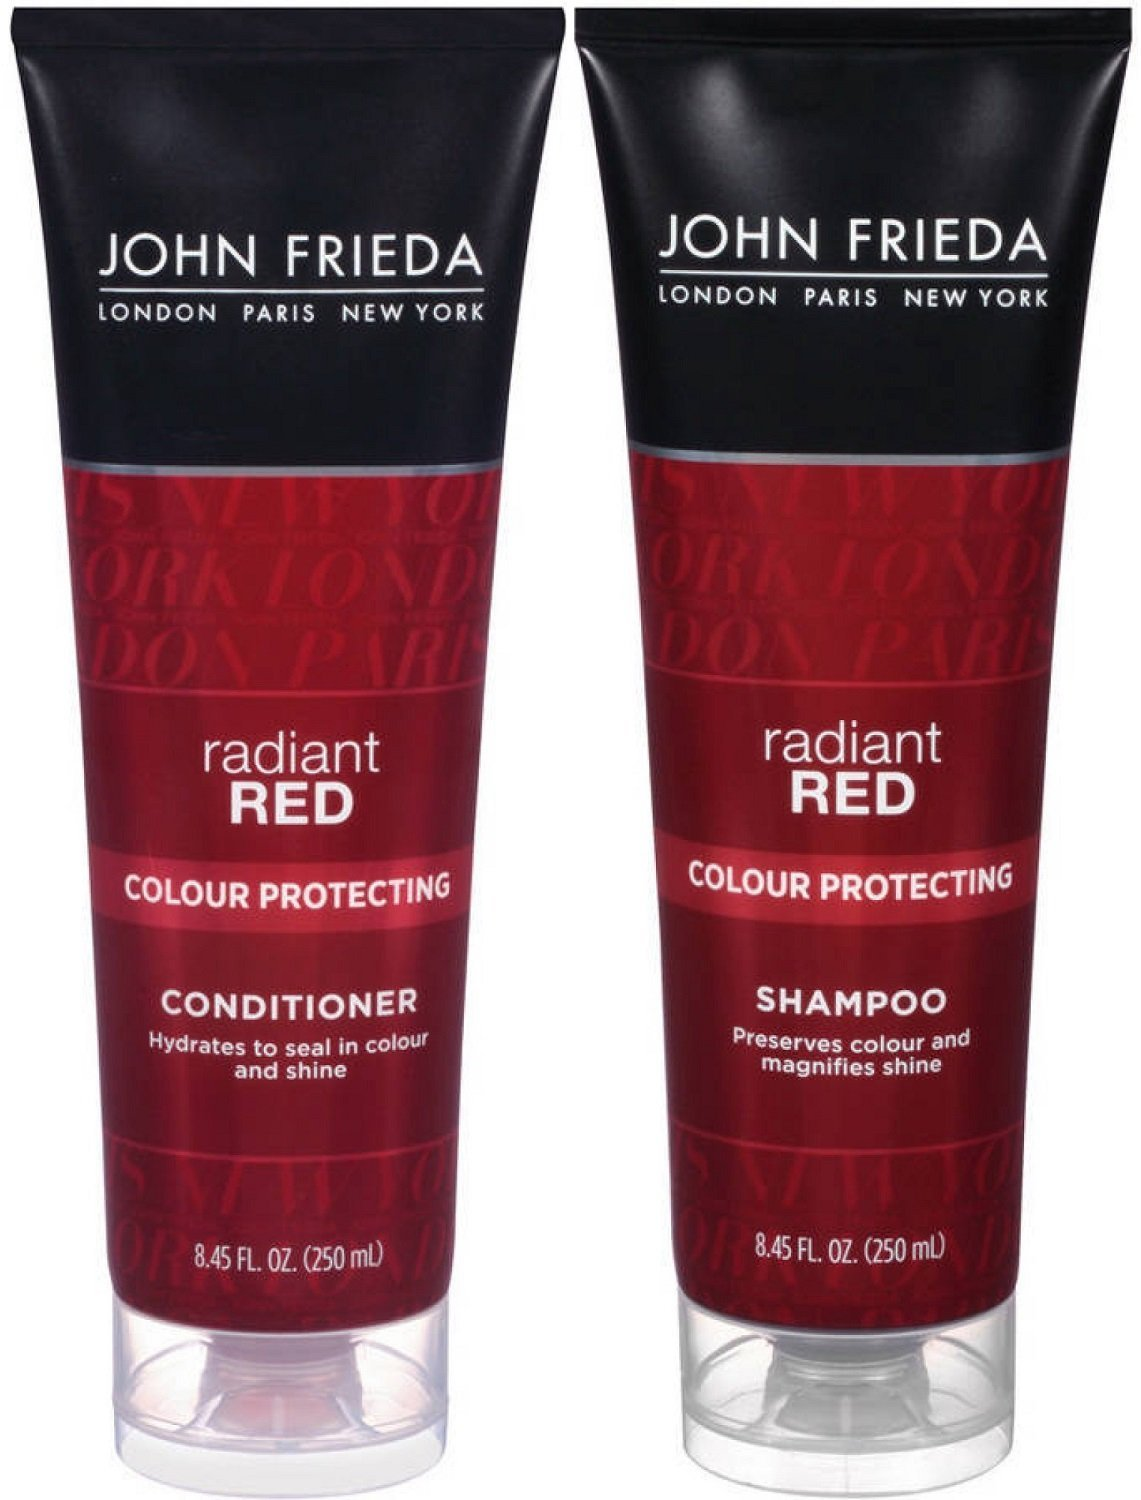 John Frieda Radiant Red Colour Protecting, DUO set Shampoo + Conditioner, 8.45